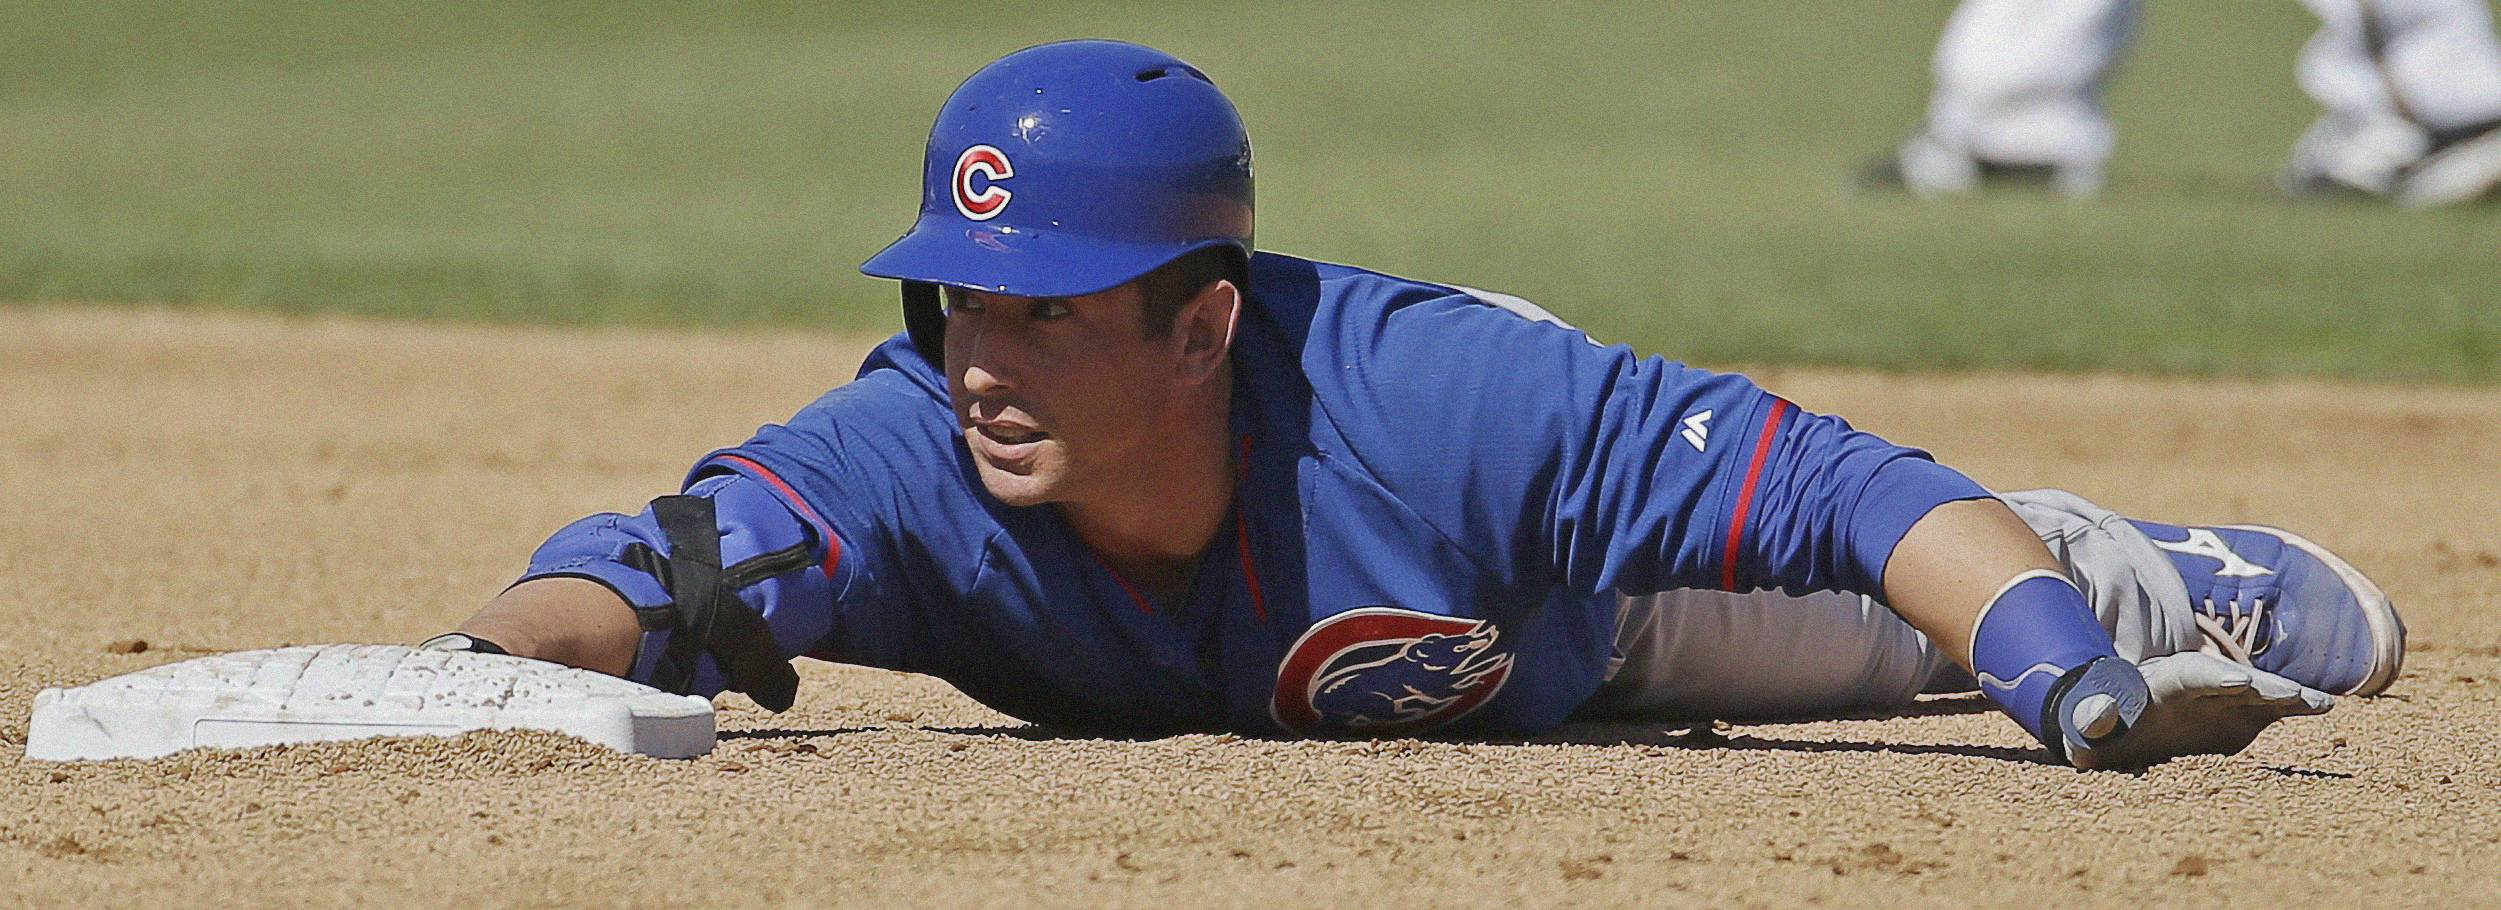 The Cubs' John Baker slides into second for a double during the fourth inning of Monday's spring training game against the Milwaukee Brewers.